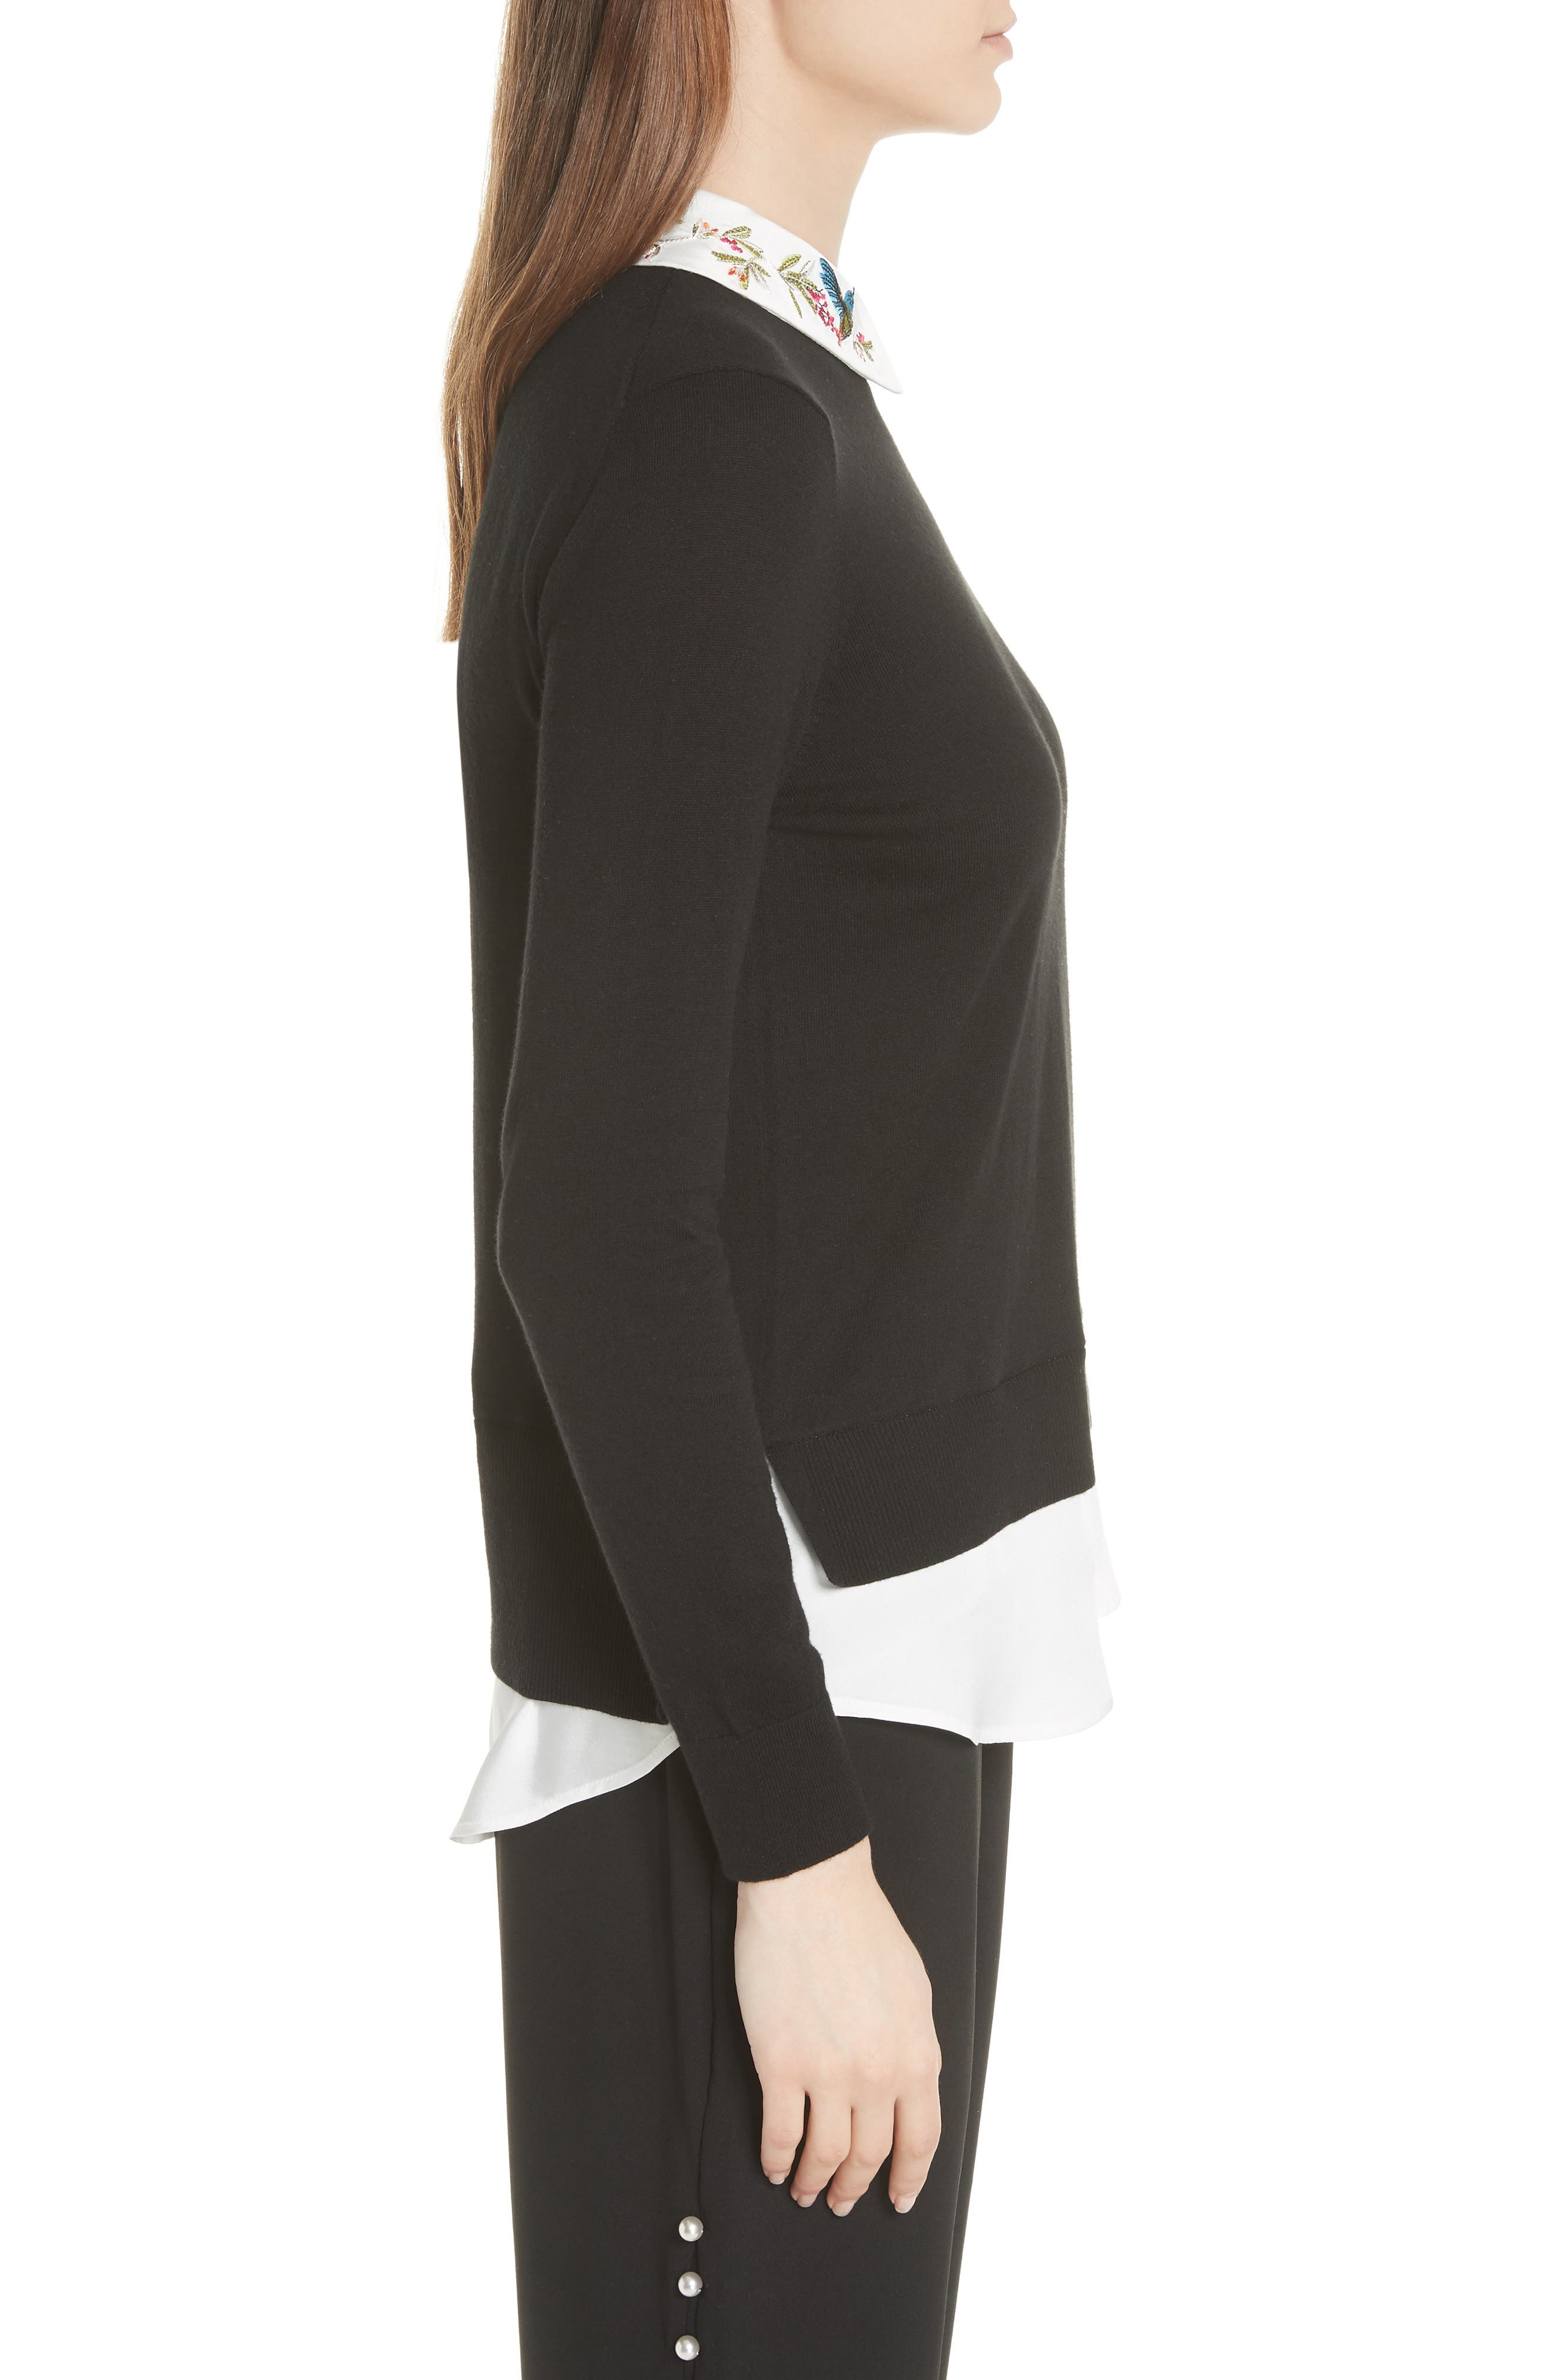 Highgrove Layered Look Sweater,                             Alternate thumbnail 3, color,